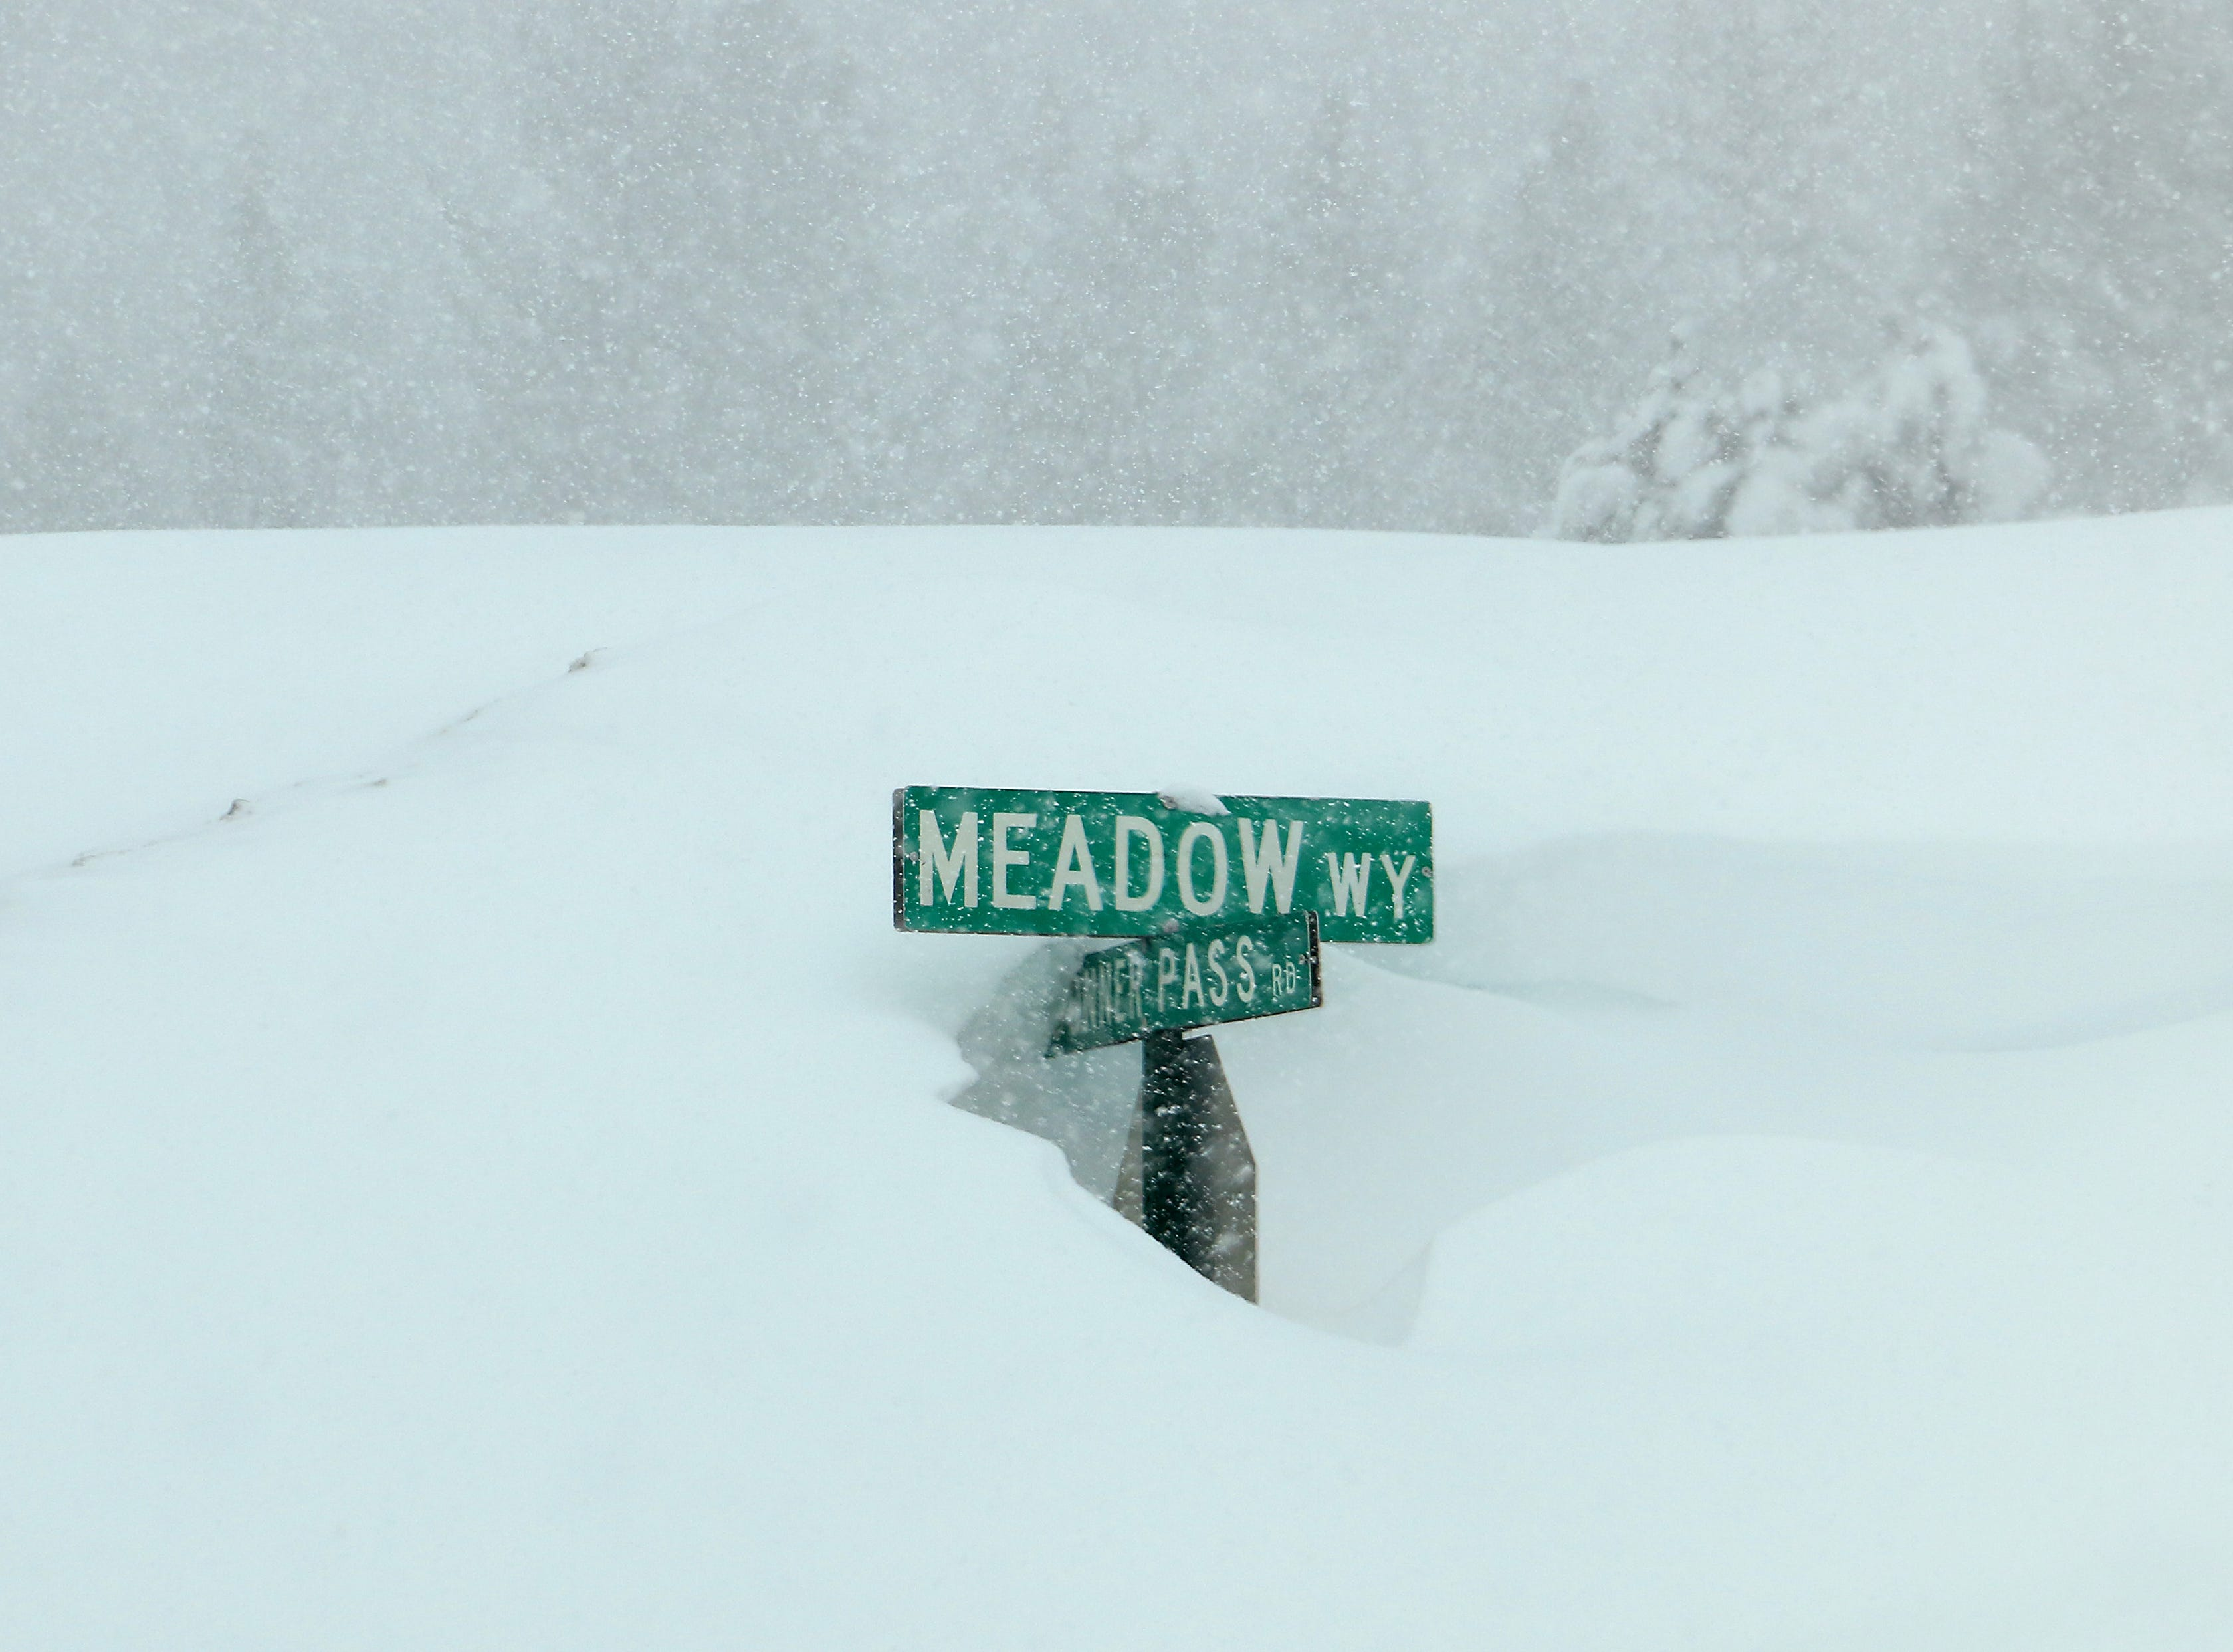 A street sign is seen mostly buried in Truckee, Calif. on Feb. 16, 2019.